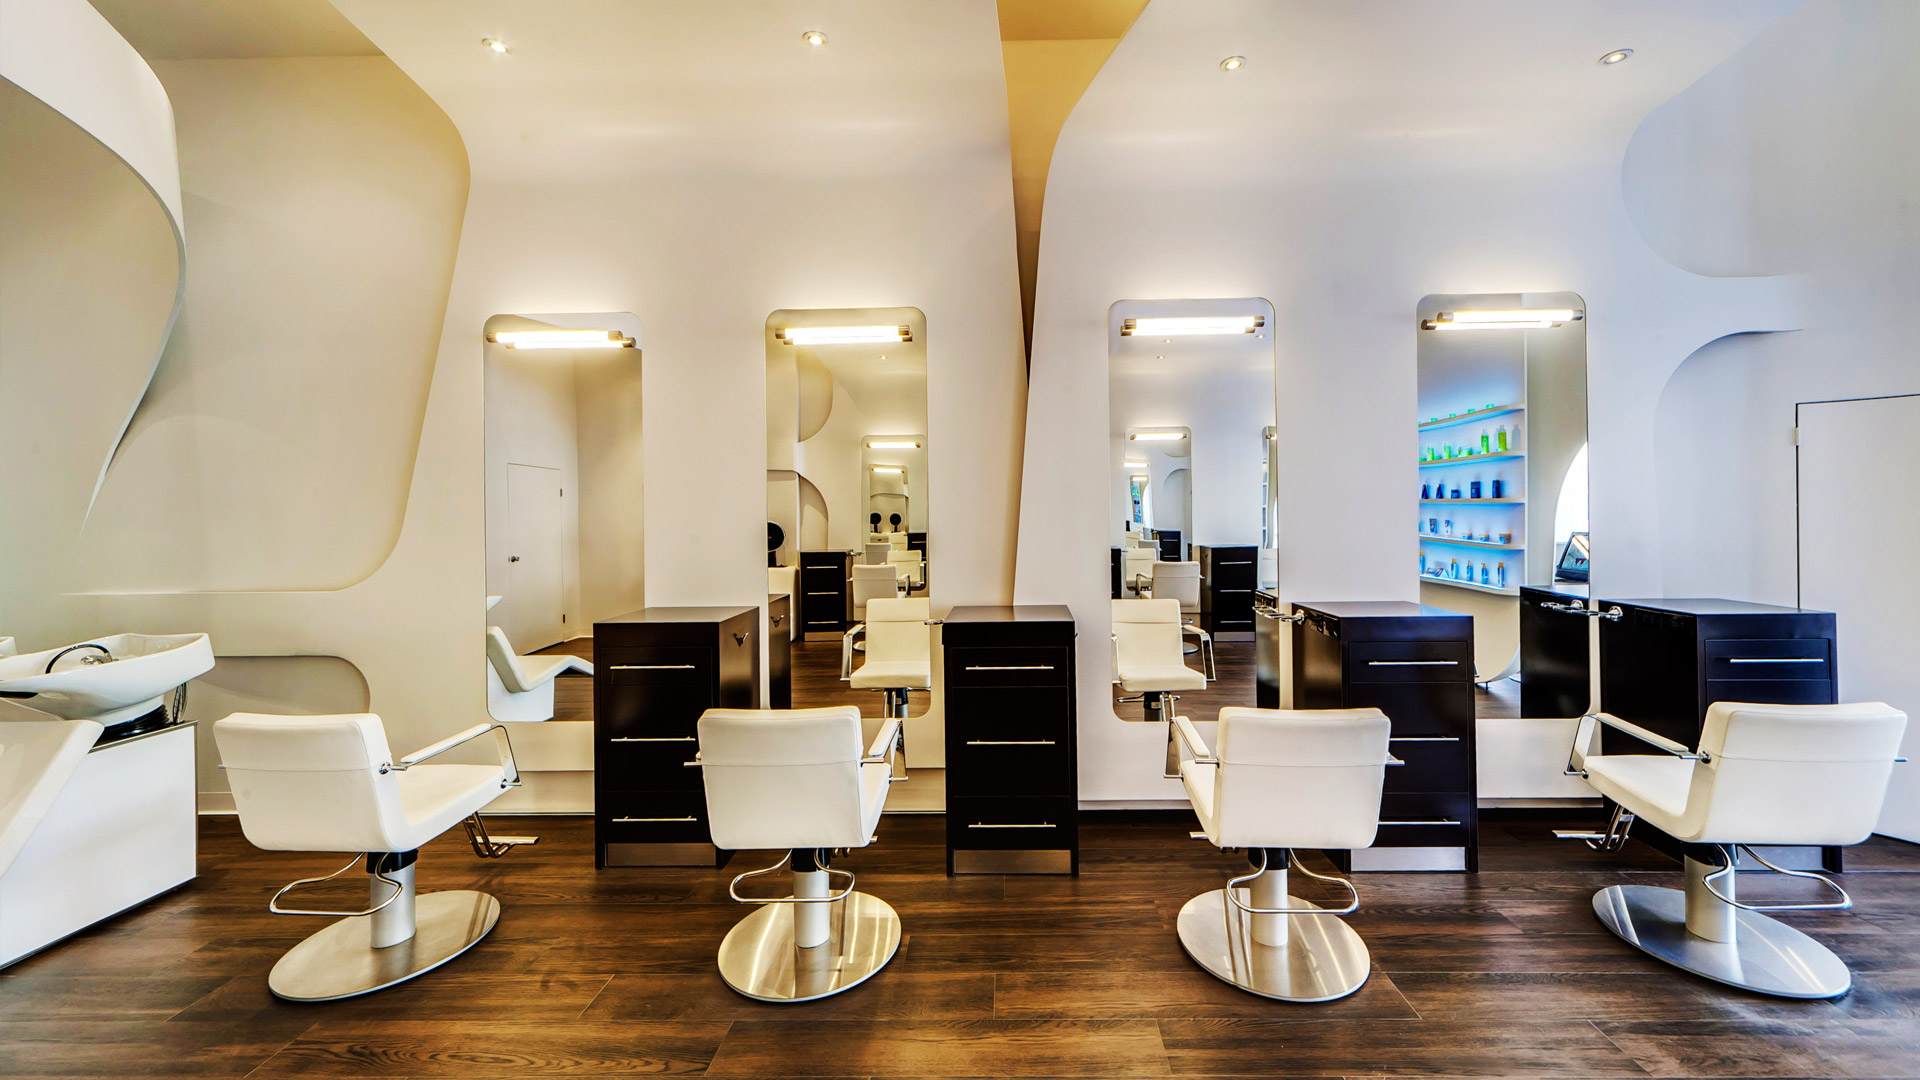 Beauty Hair Salon Posh Beauty Salon Kew Gardens Ny Garden Ftempo